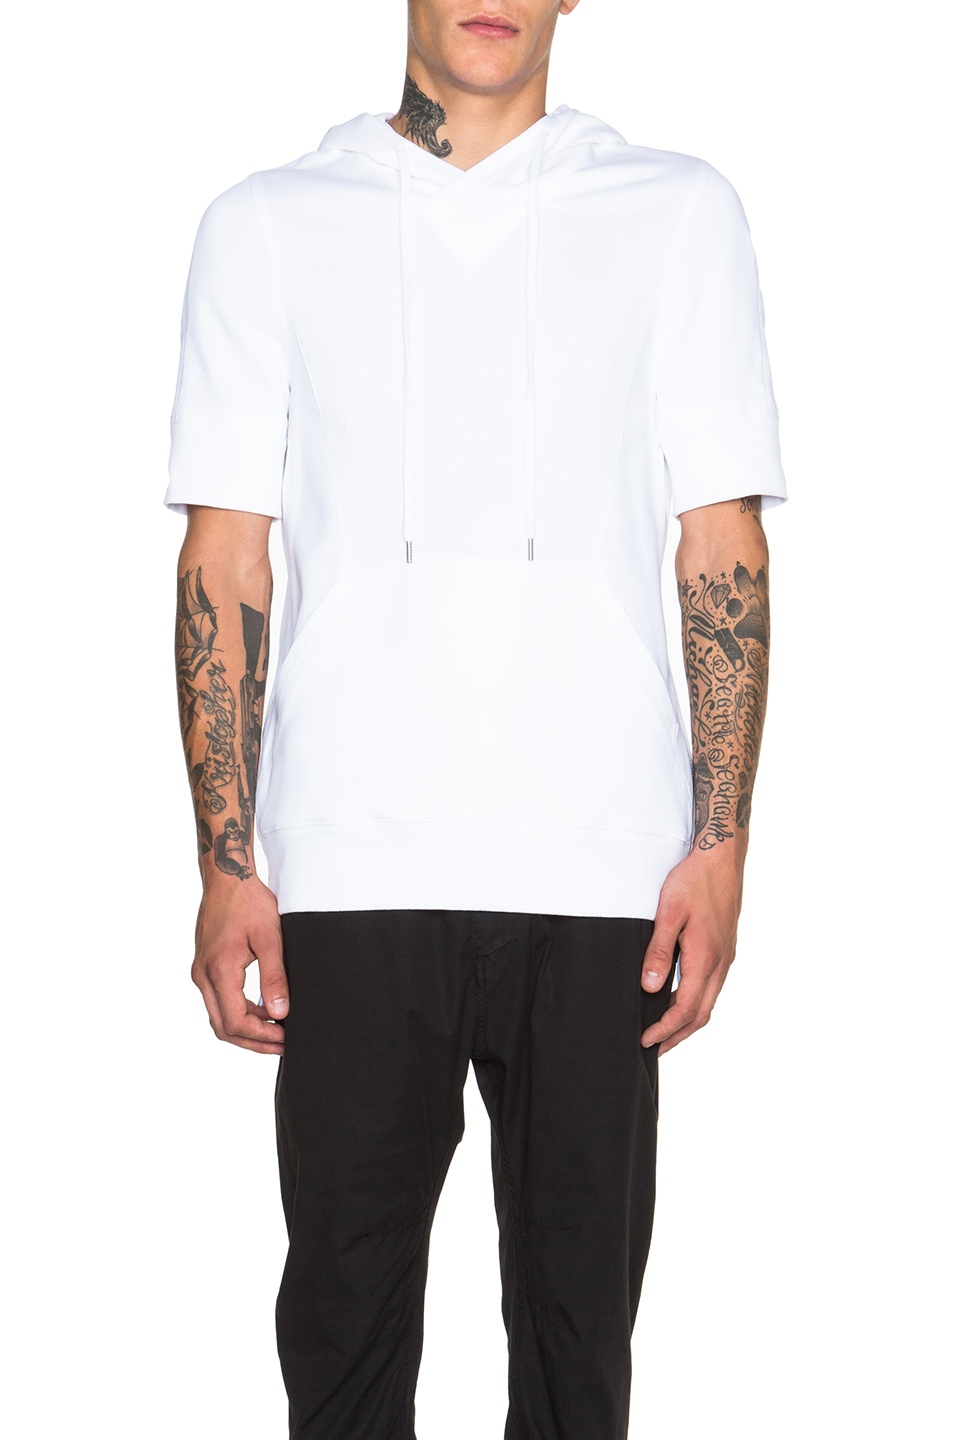 Helmut lang Men's Flat Loop Terry Short Sleeve Hoodie in White | Lyst